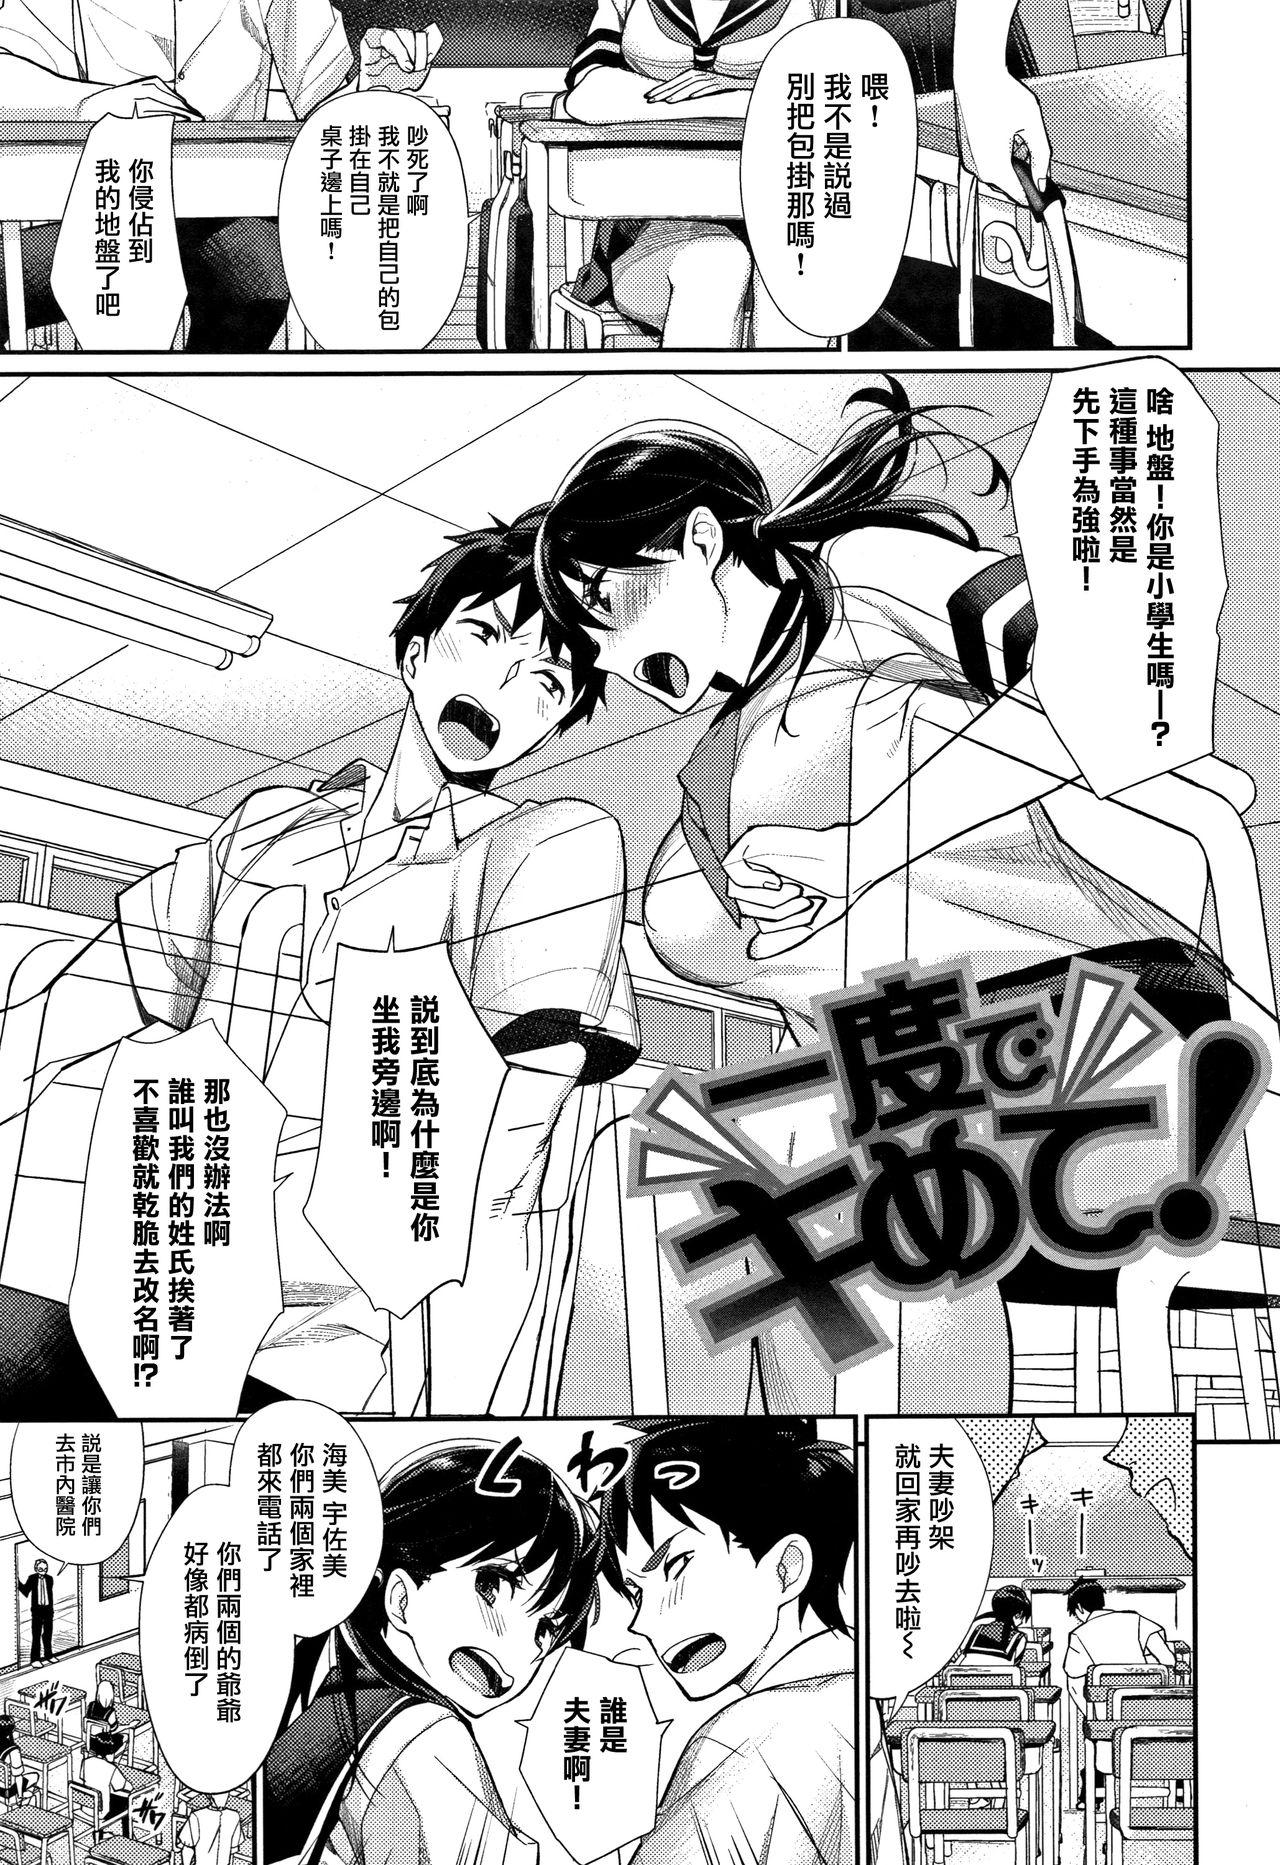 [MGMEE] Bokura no Etude - Our H Chu Do Ch.1-7 [Chinese] [無邪気漢化組] 76